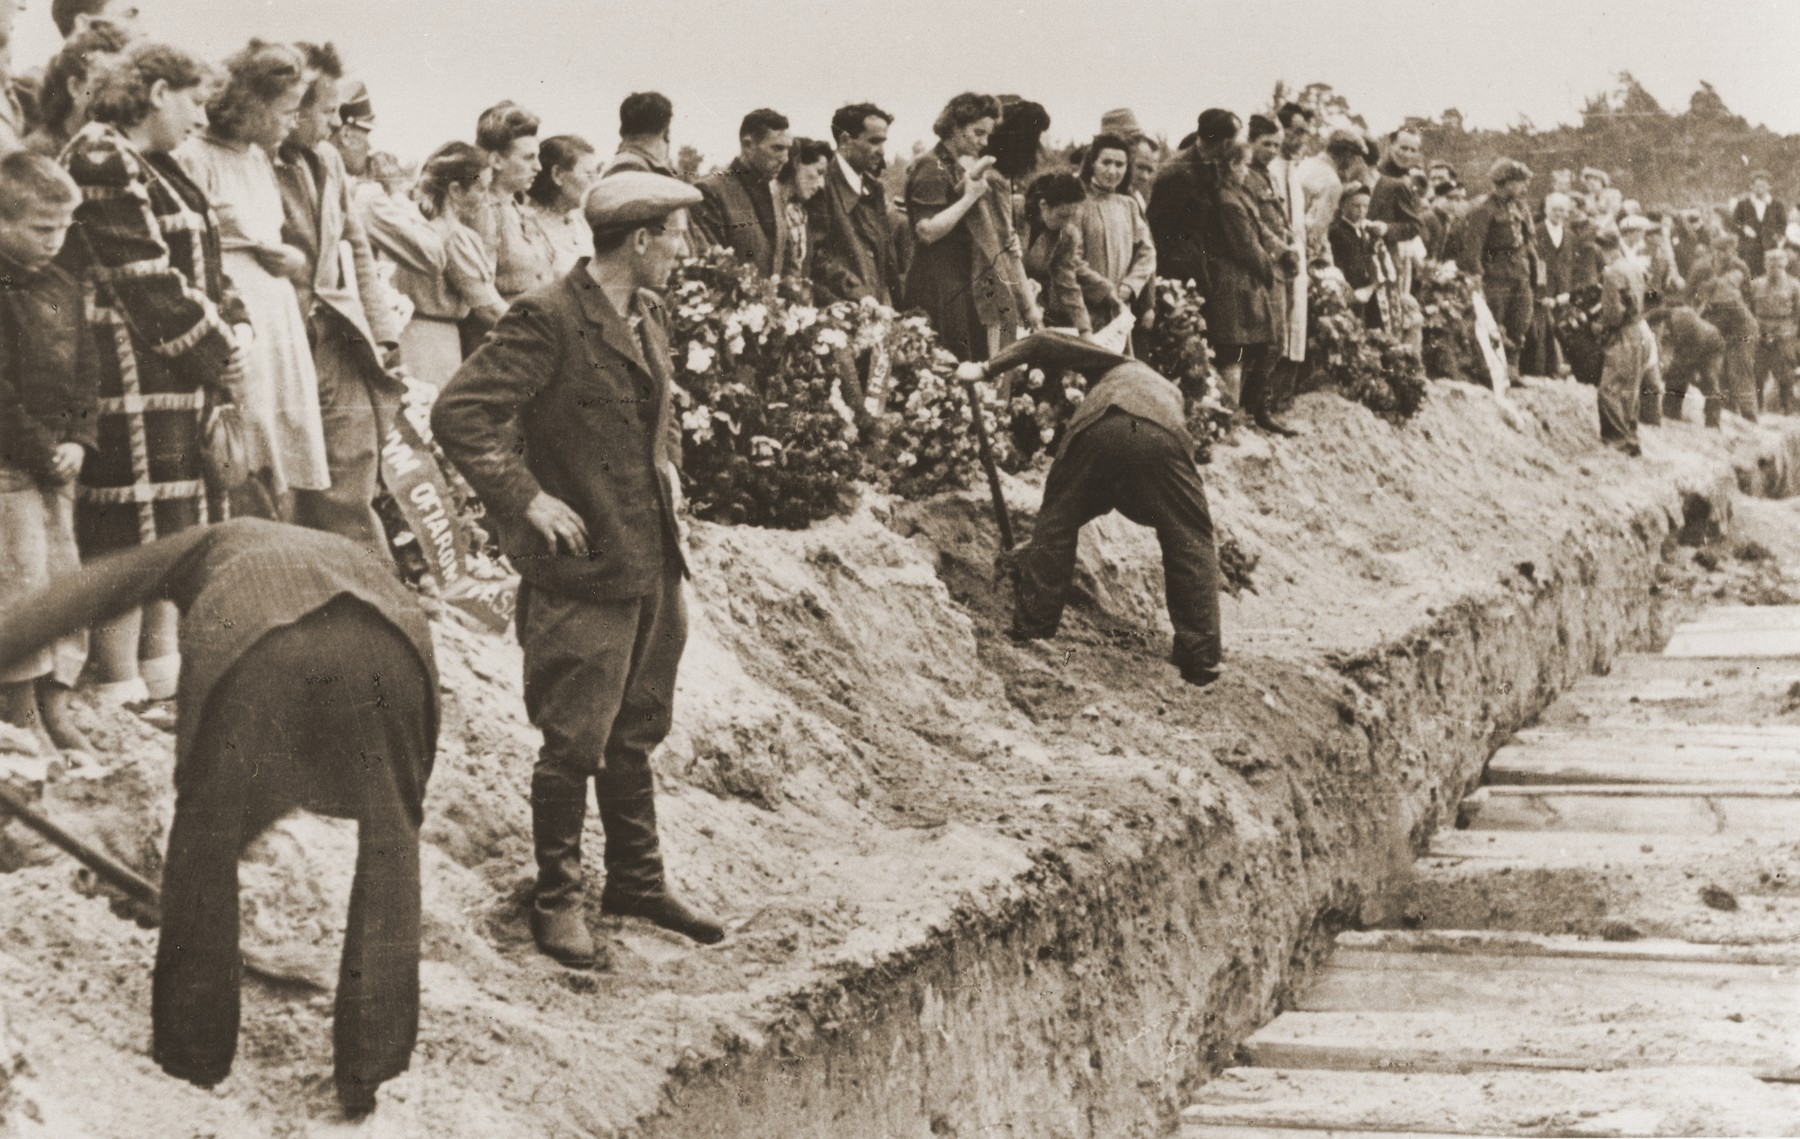 Mourners and local residents shovel dirt into the mass grave of the victims of the Kielce pogrom during the public burial.